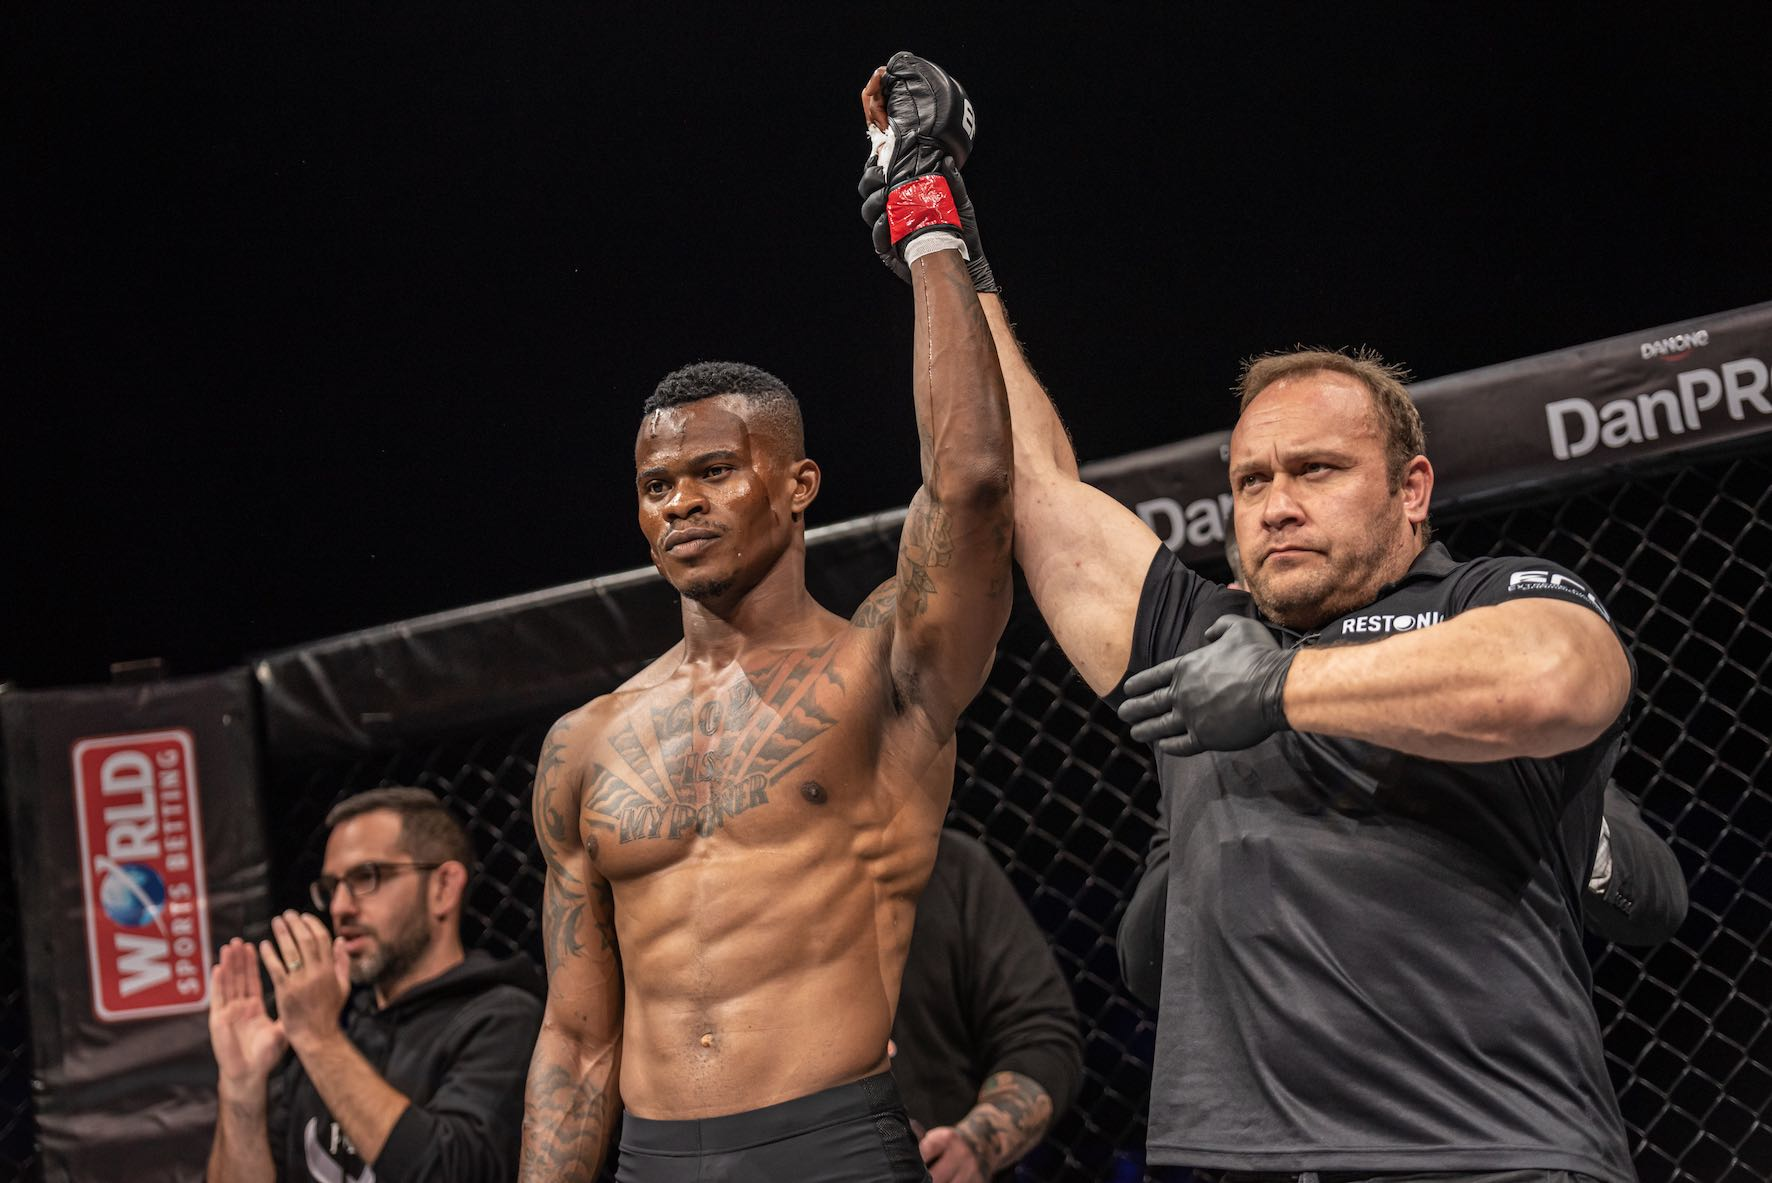 The 2020 South African MMA calendar kicked off with EFC 84